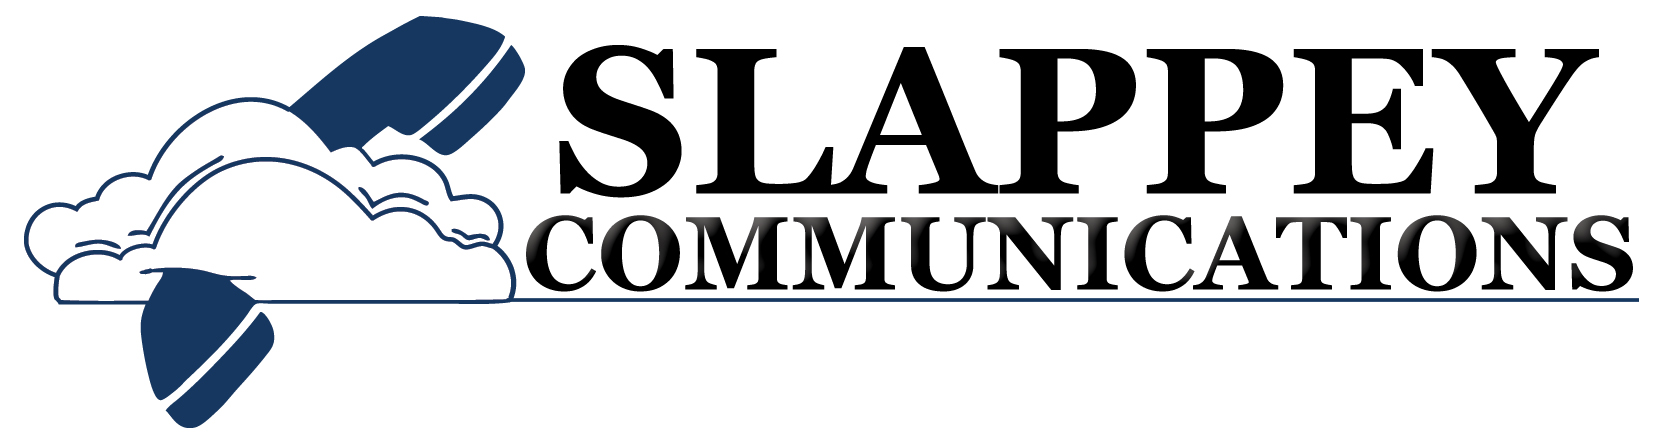 Slappey Communications Logo